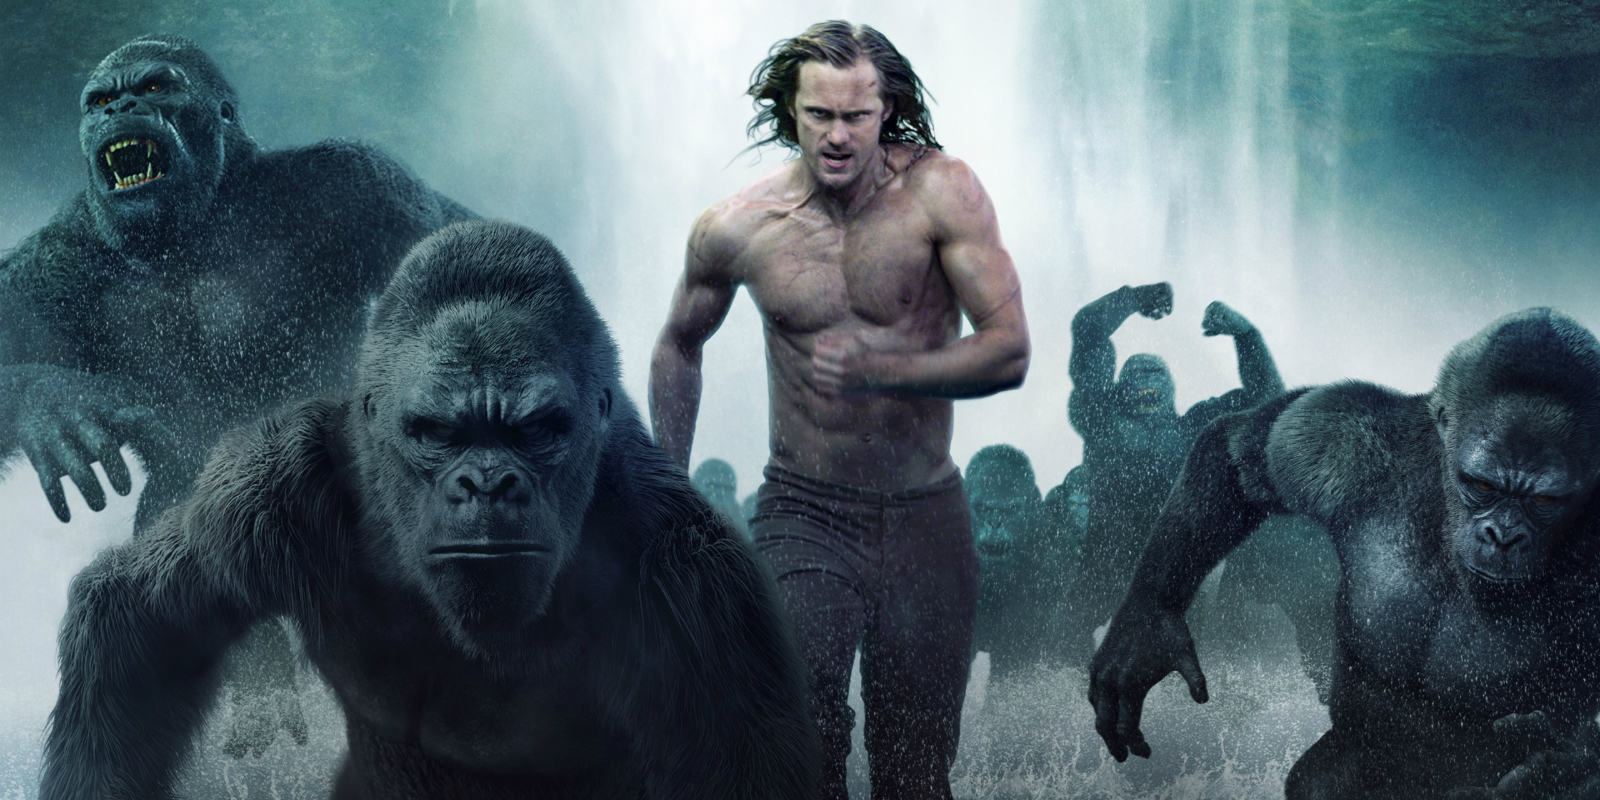 'The Legend of Tarzan': A Conventional Tale That Is Far From Legendary